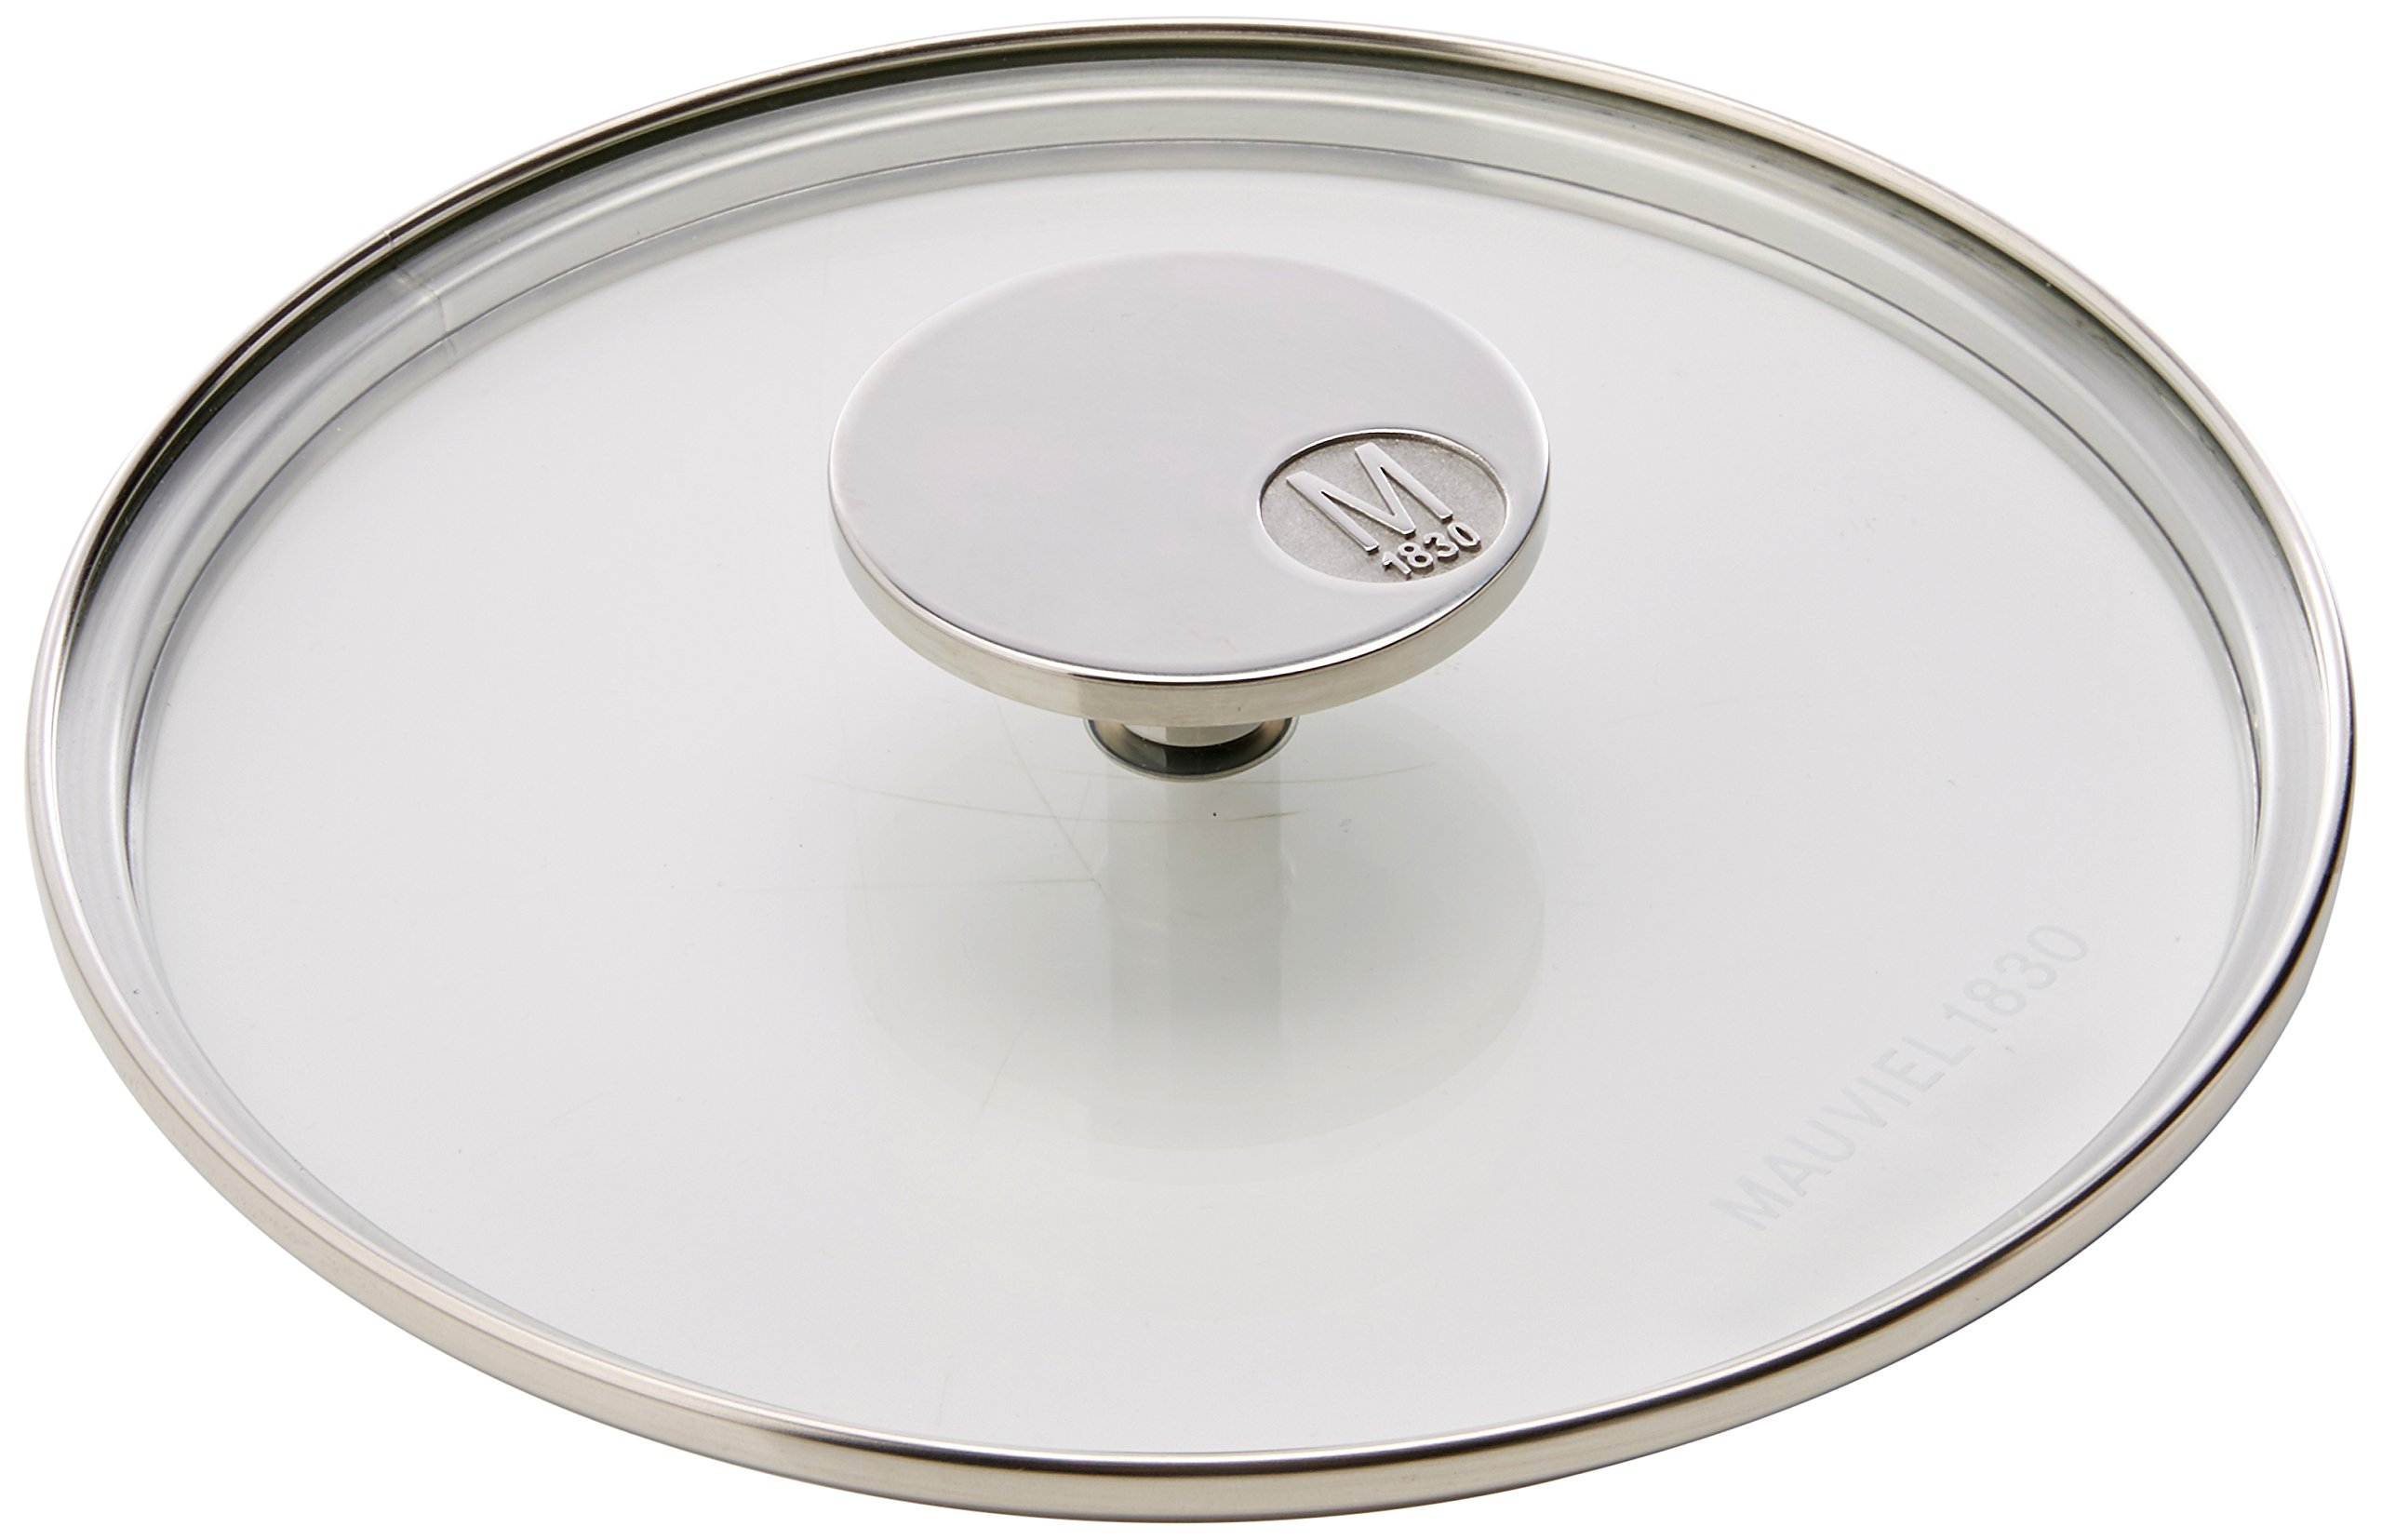 Mauviel Made In France M'360 5318.18 7-Inch Glass Lid with Cast Stainless Steel